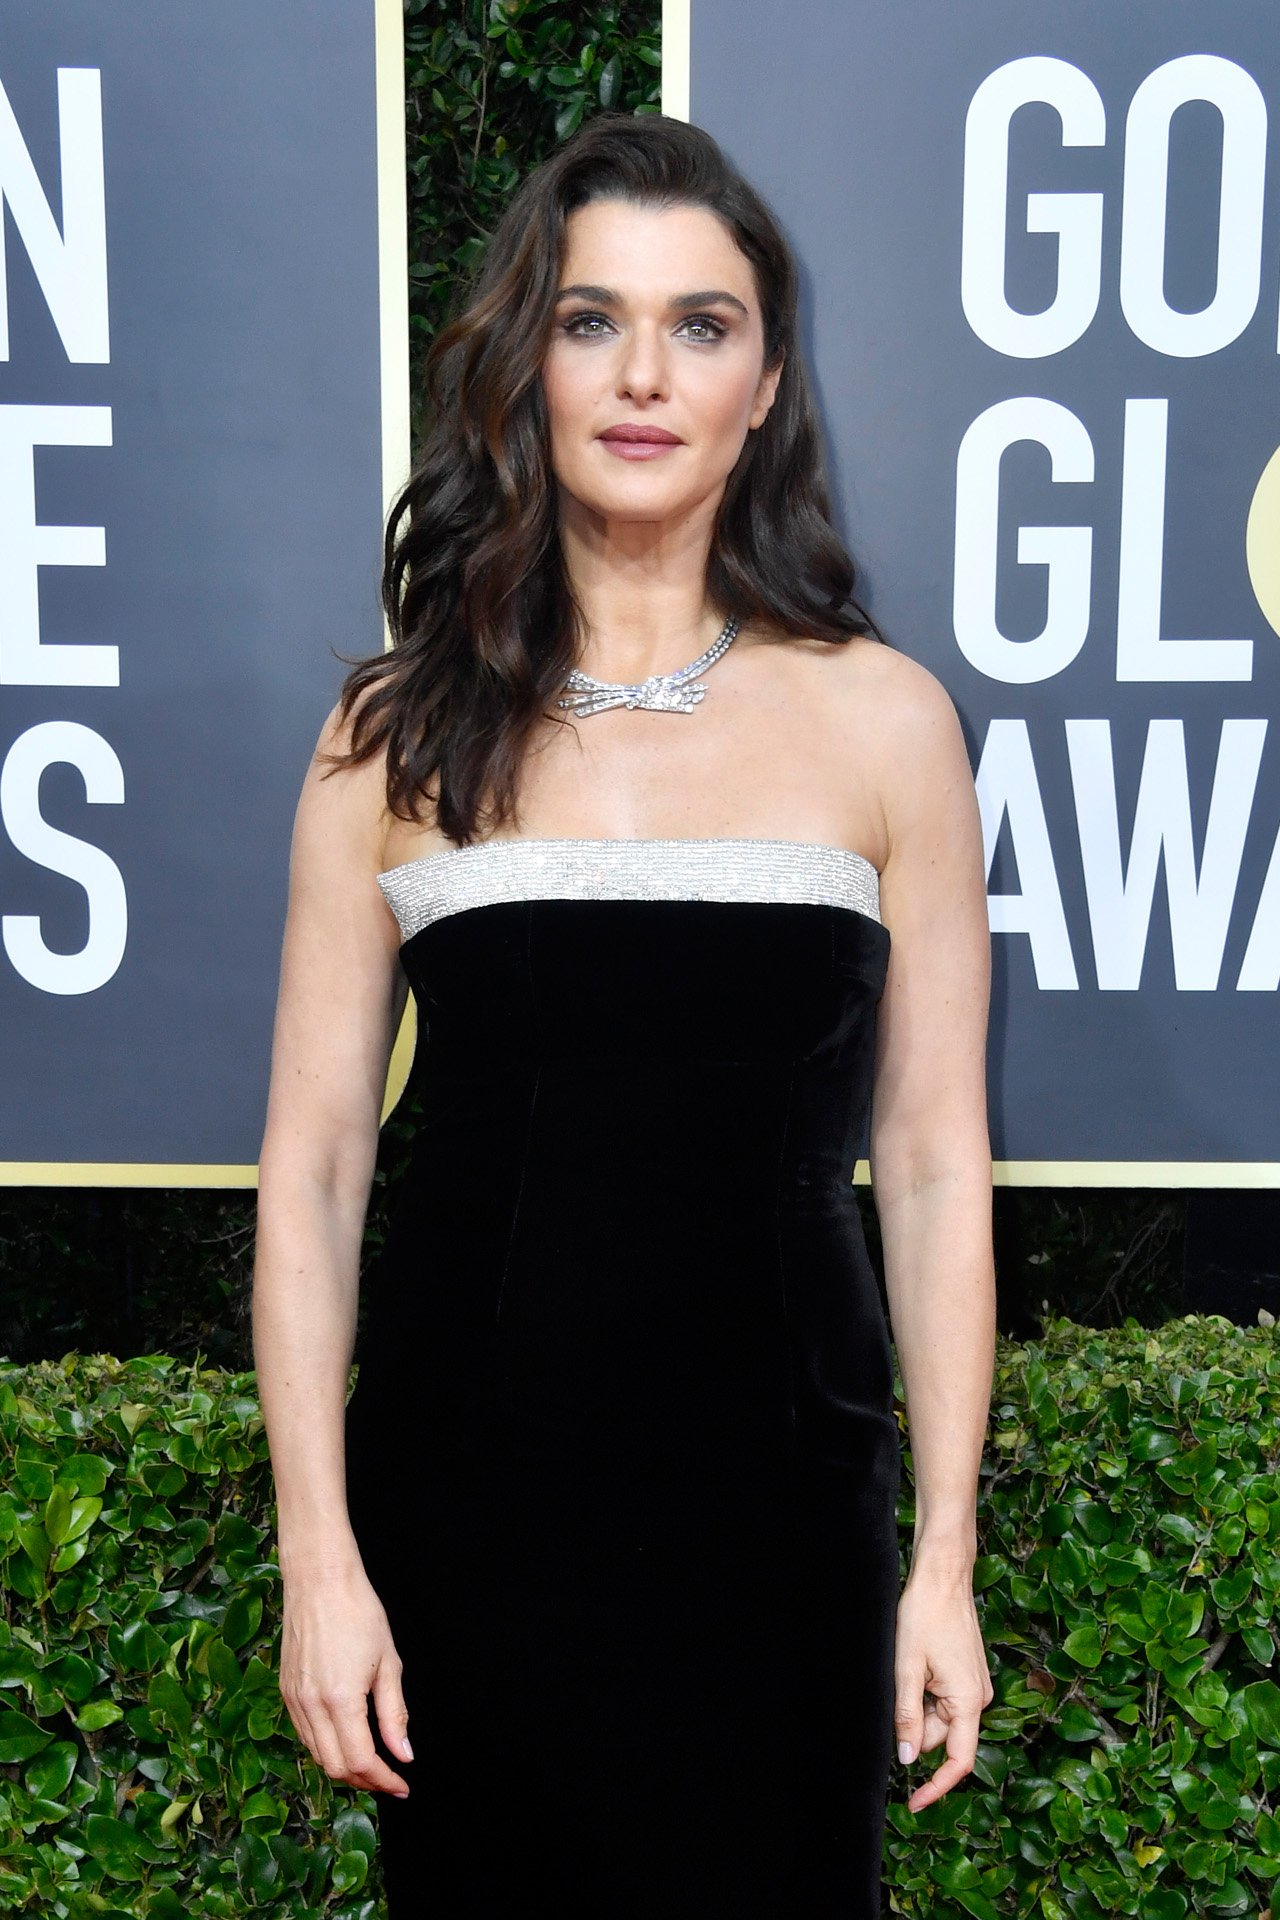 BEVERLY HILLS, CALIFORNIA - JANUARY 05: Rachel Weisz attends the 77th Annual Golden Globe Awards at The Beverly Hilton Hotel on January 05, 2020 in Beverly Hills, California. Frazer Harrison/Getty Images/AFP